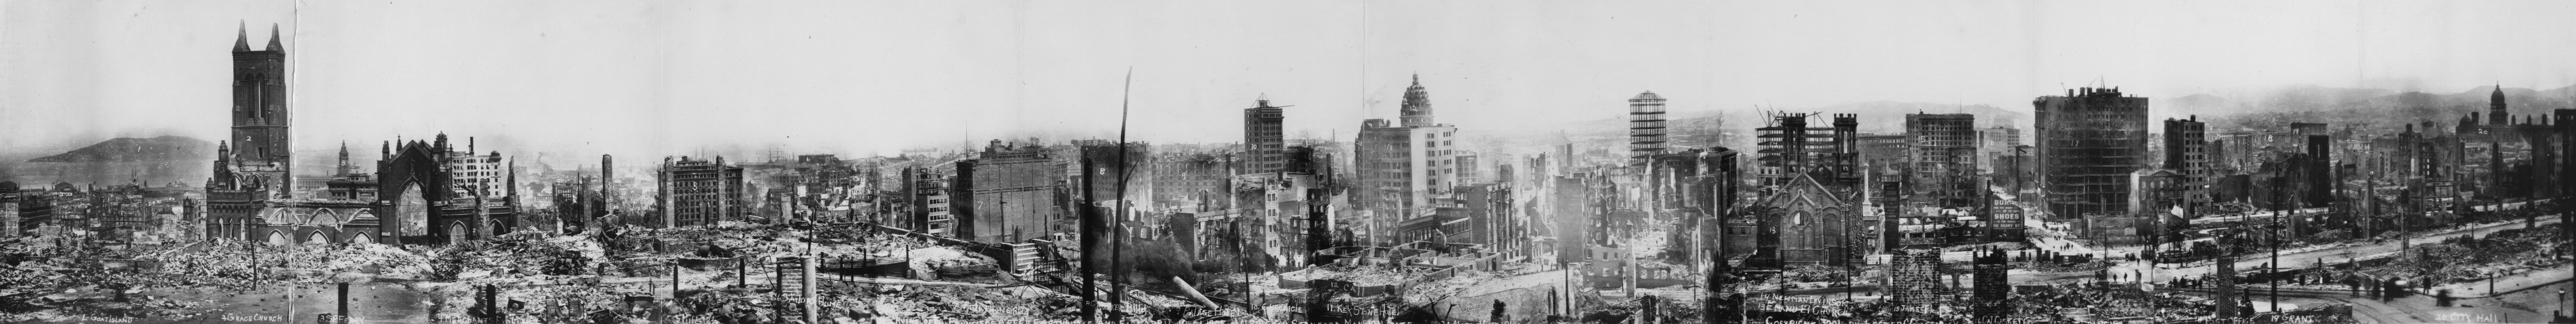 San_Francisco_1906_earthquake_Panoramic_View